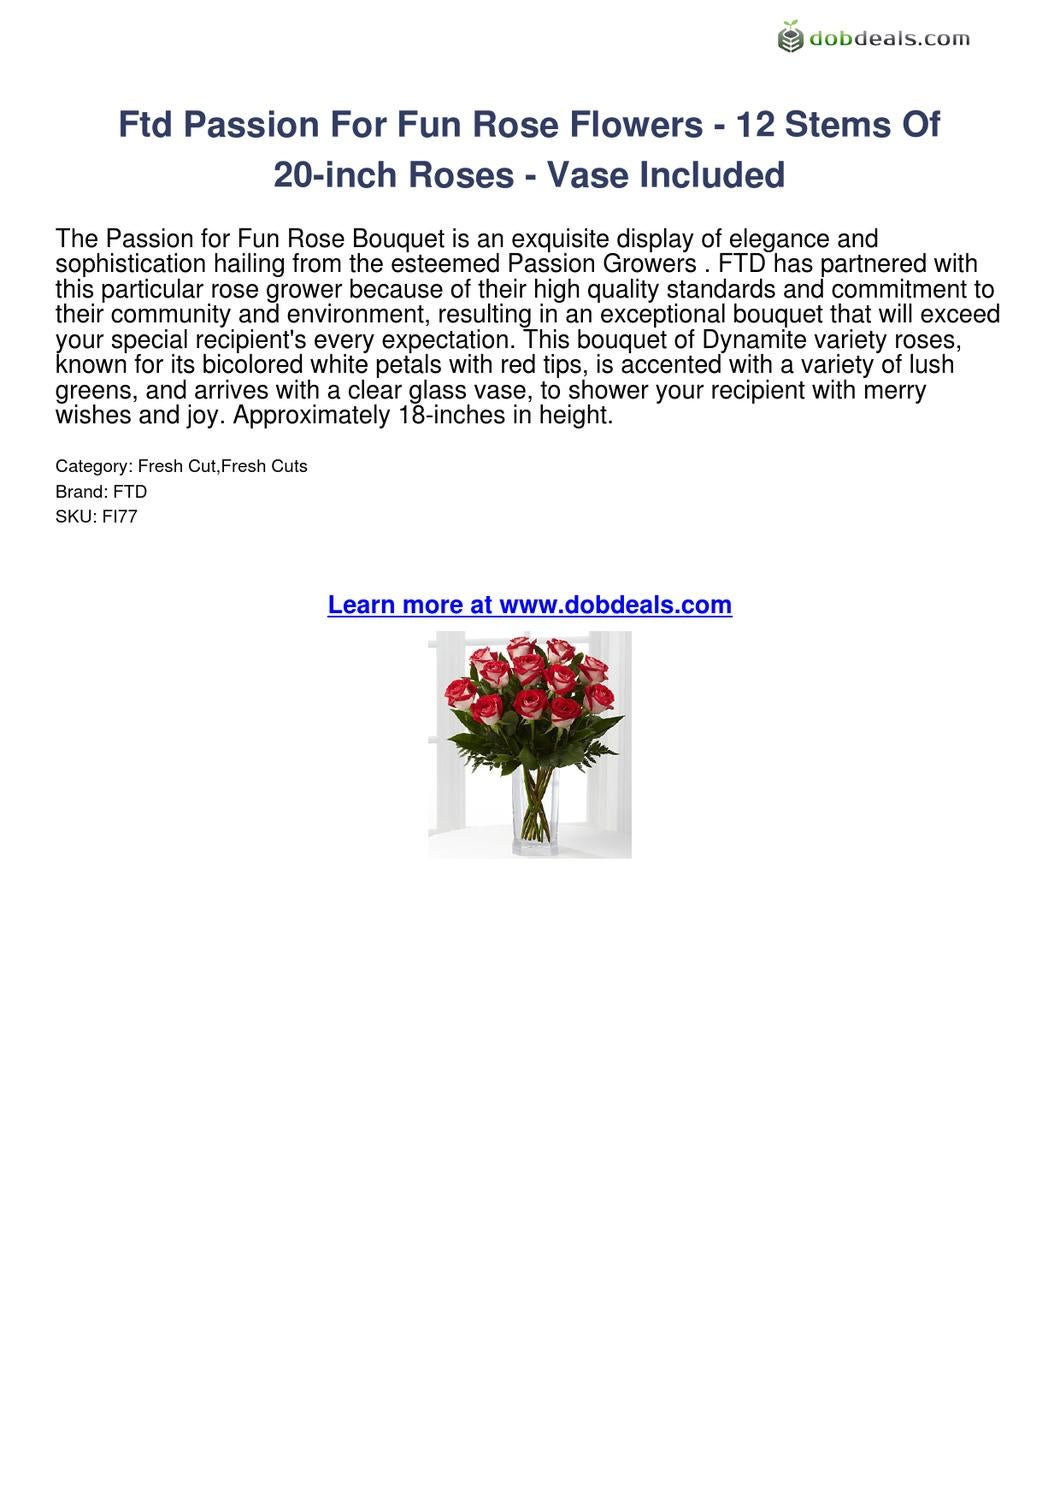 Ftd Passion For Fun Rose Flowers-12 Stems Of 20-inch Roses